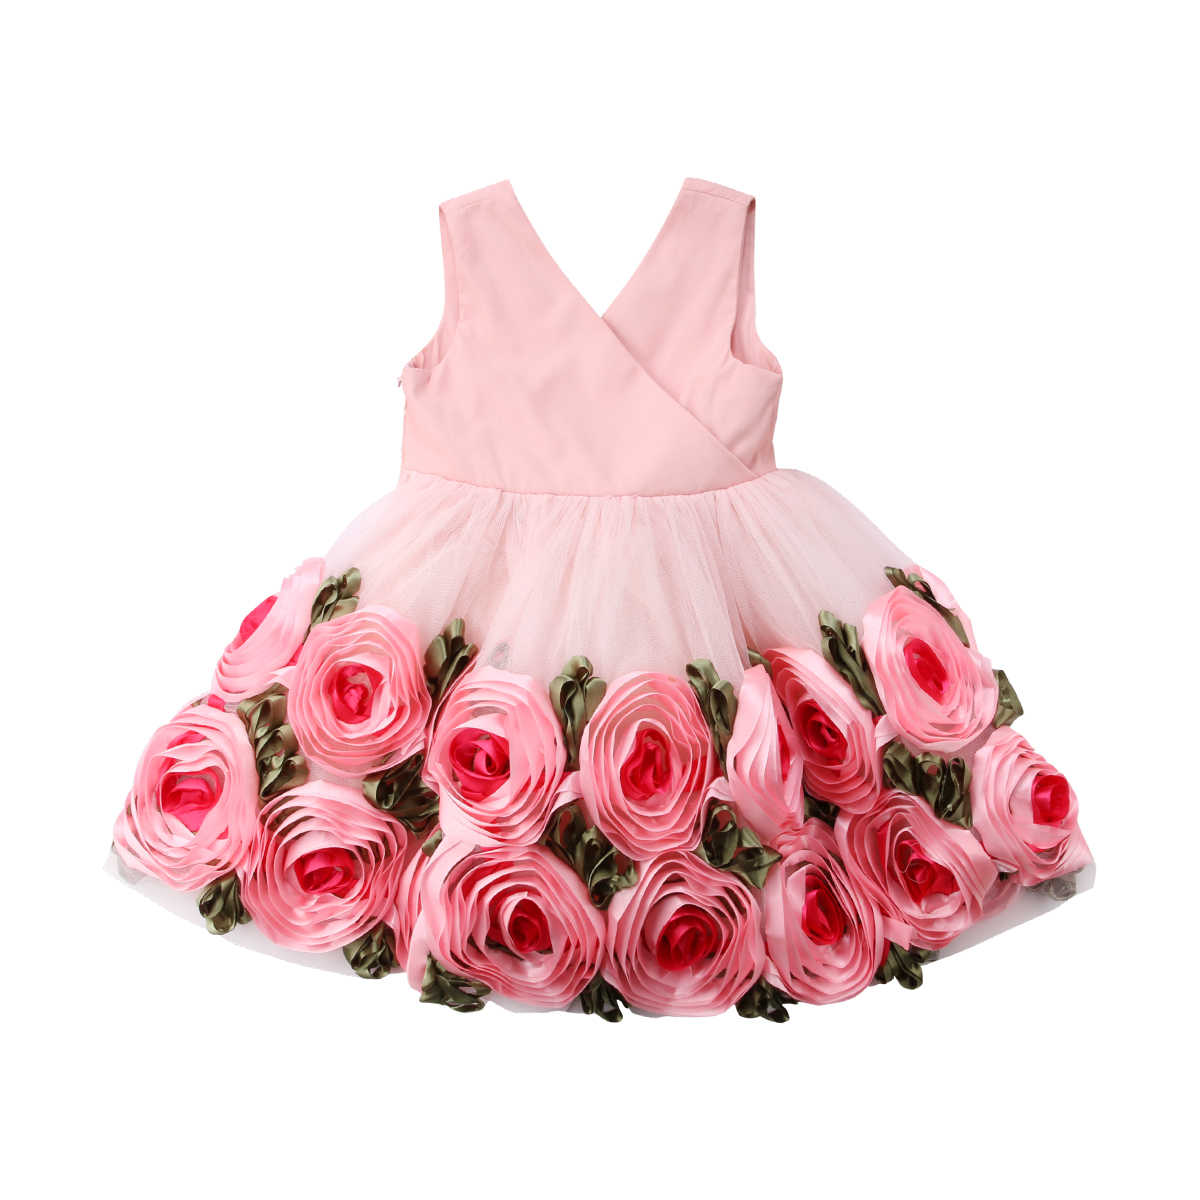 266946ad76fe New Toddler Infant Kids Child Party Wedding Formal Dresses Rose Girl  Princess Dress Flower Chiffon Sundress